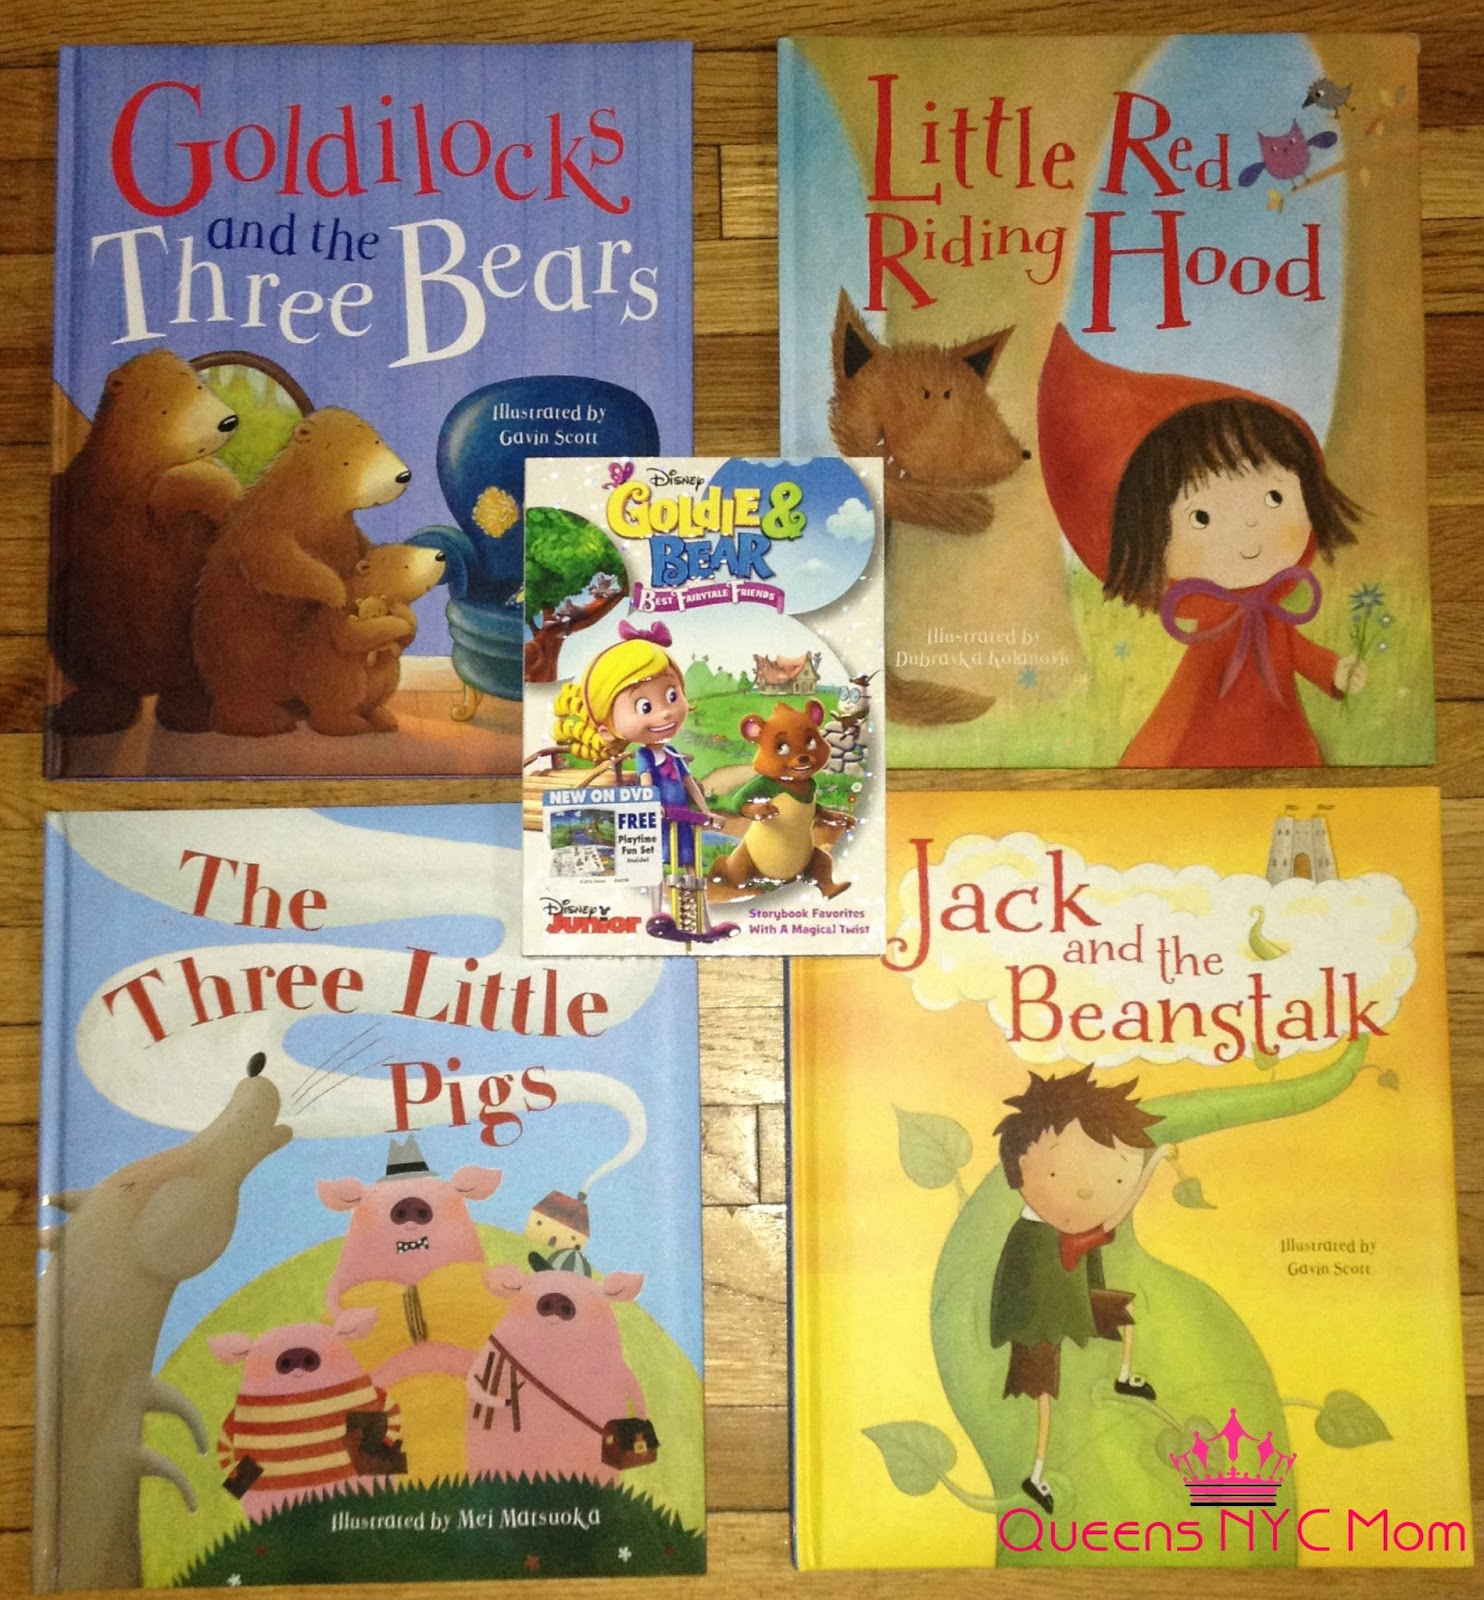 Leola and the honeybears: An African-American retelling of Goldie locks and the three bears pictures